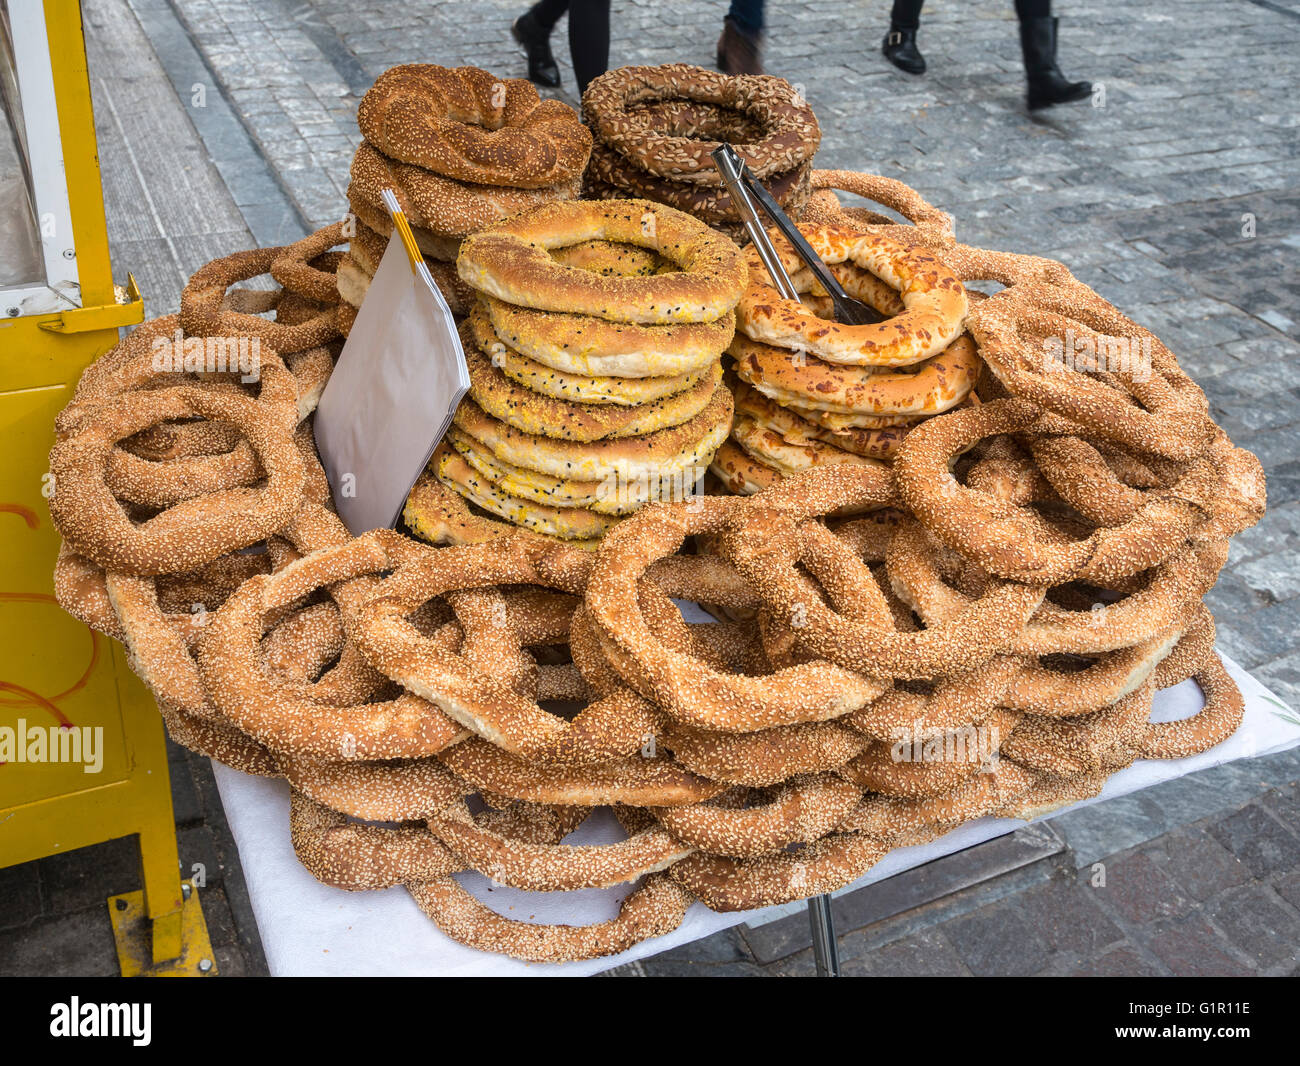 koulouri (bred rings) for sale from a kiosk in Ermou street in the centre of Athens, Greece. - Stock Image